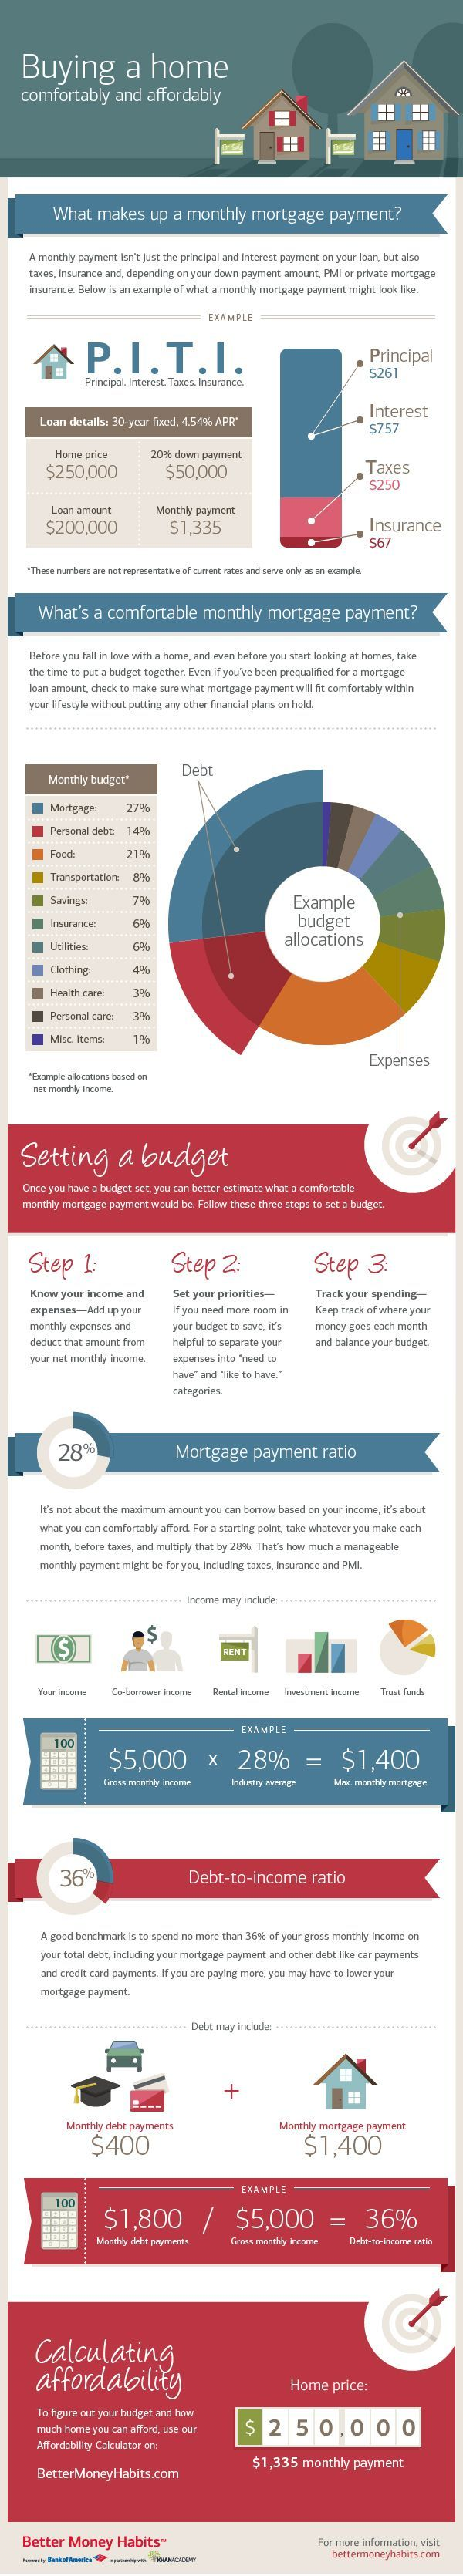 Buying your first home together reco website - Learn How Much Mortgage Payment You Can Afford With The Tips And Insights Offered In This